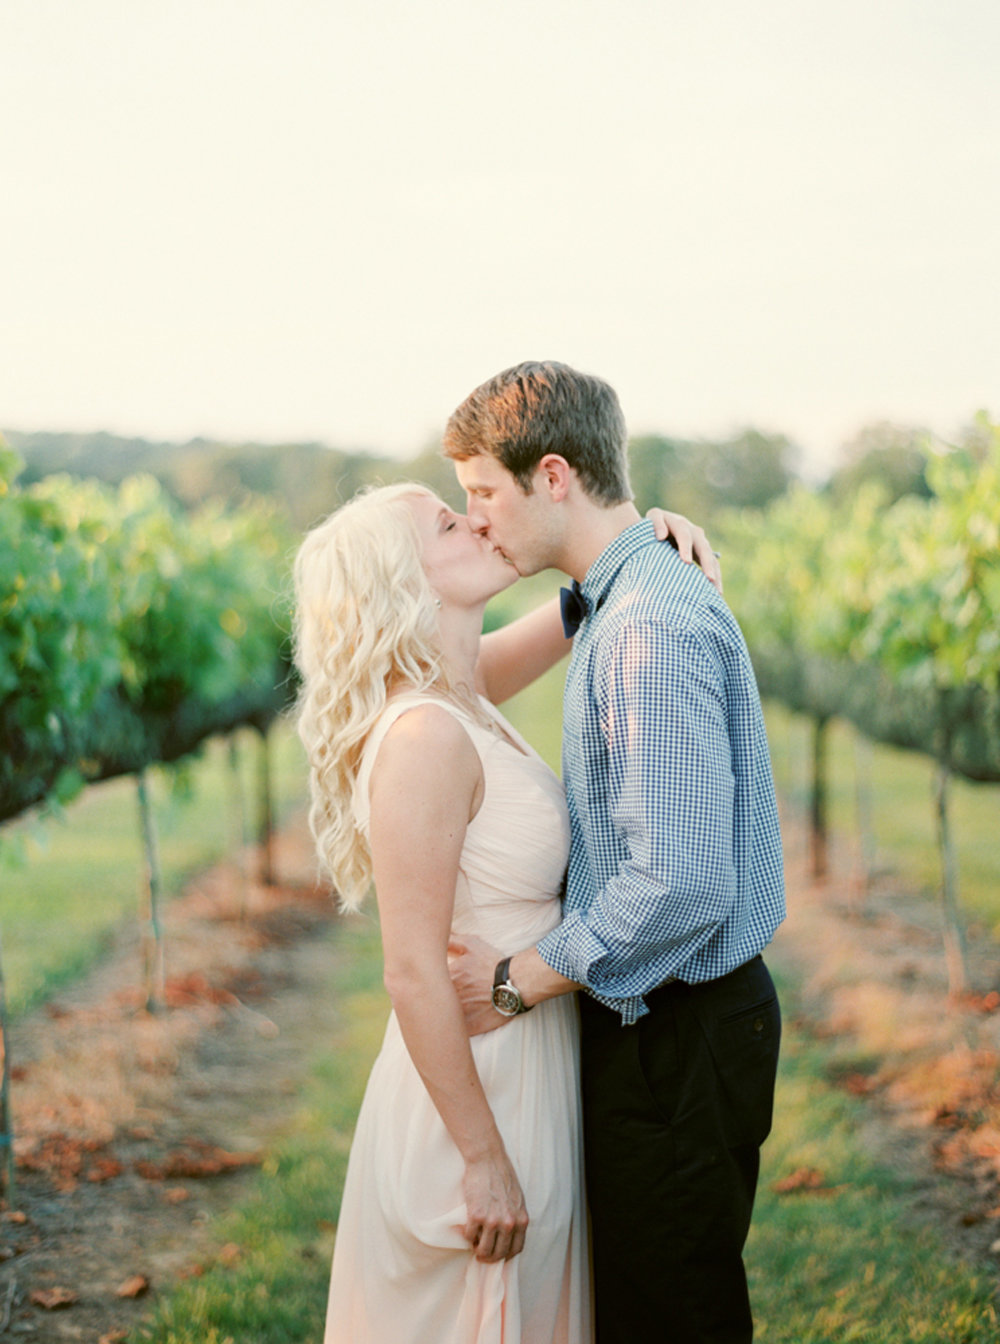 nashville-arrington-vineyard-engagement-session-41 copy